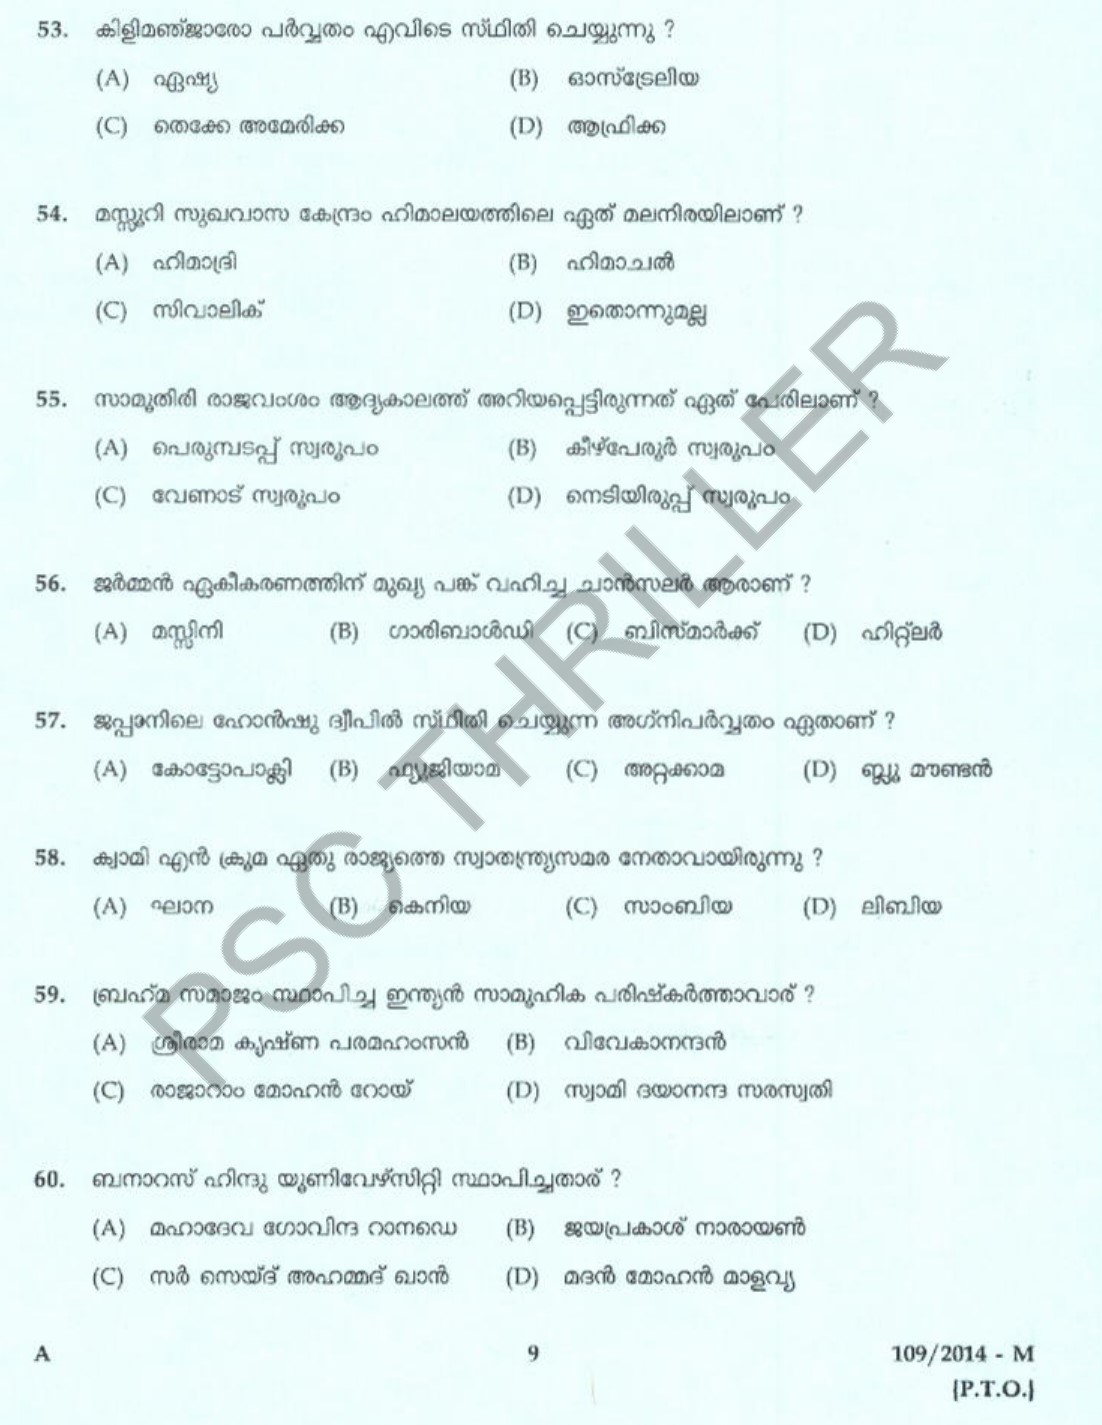 Peon- Question Paper with Answer Key- 109/2014 - Kerala PSC